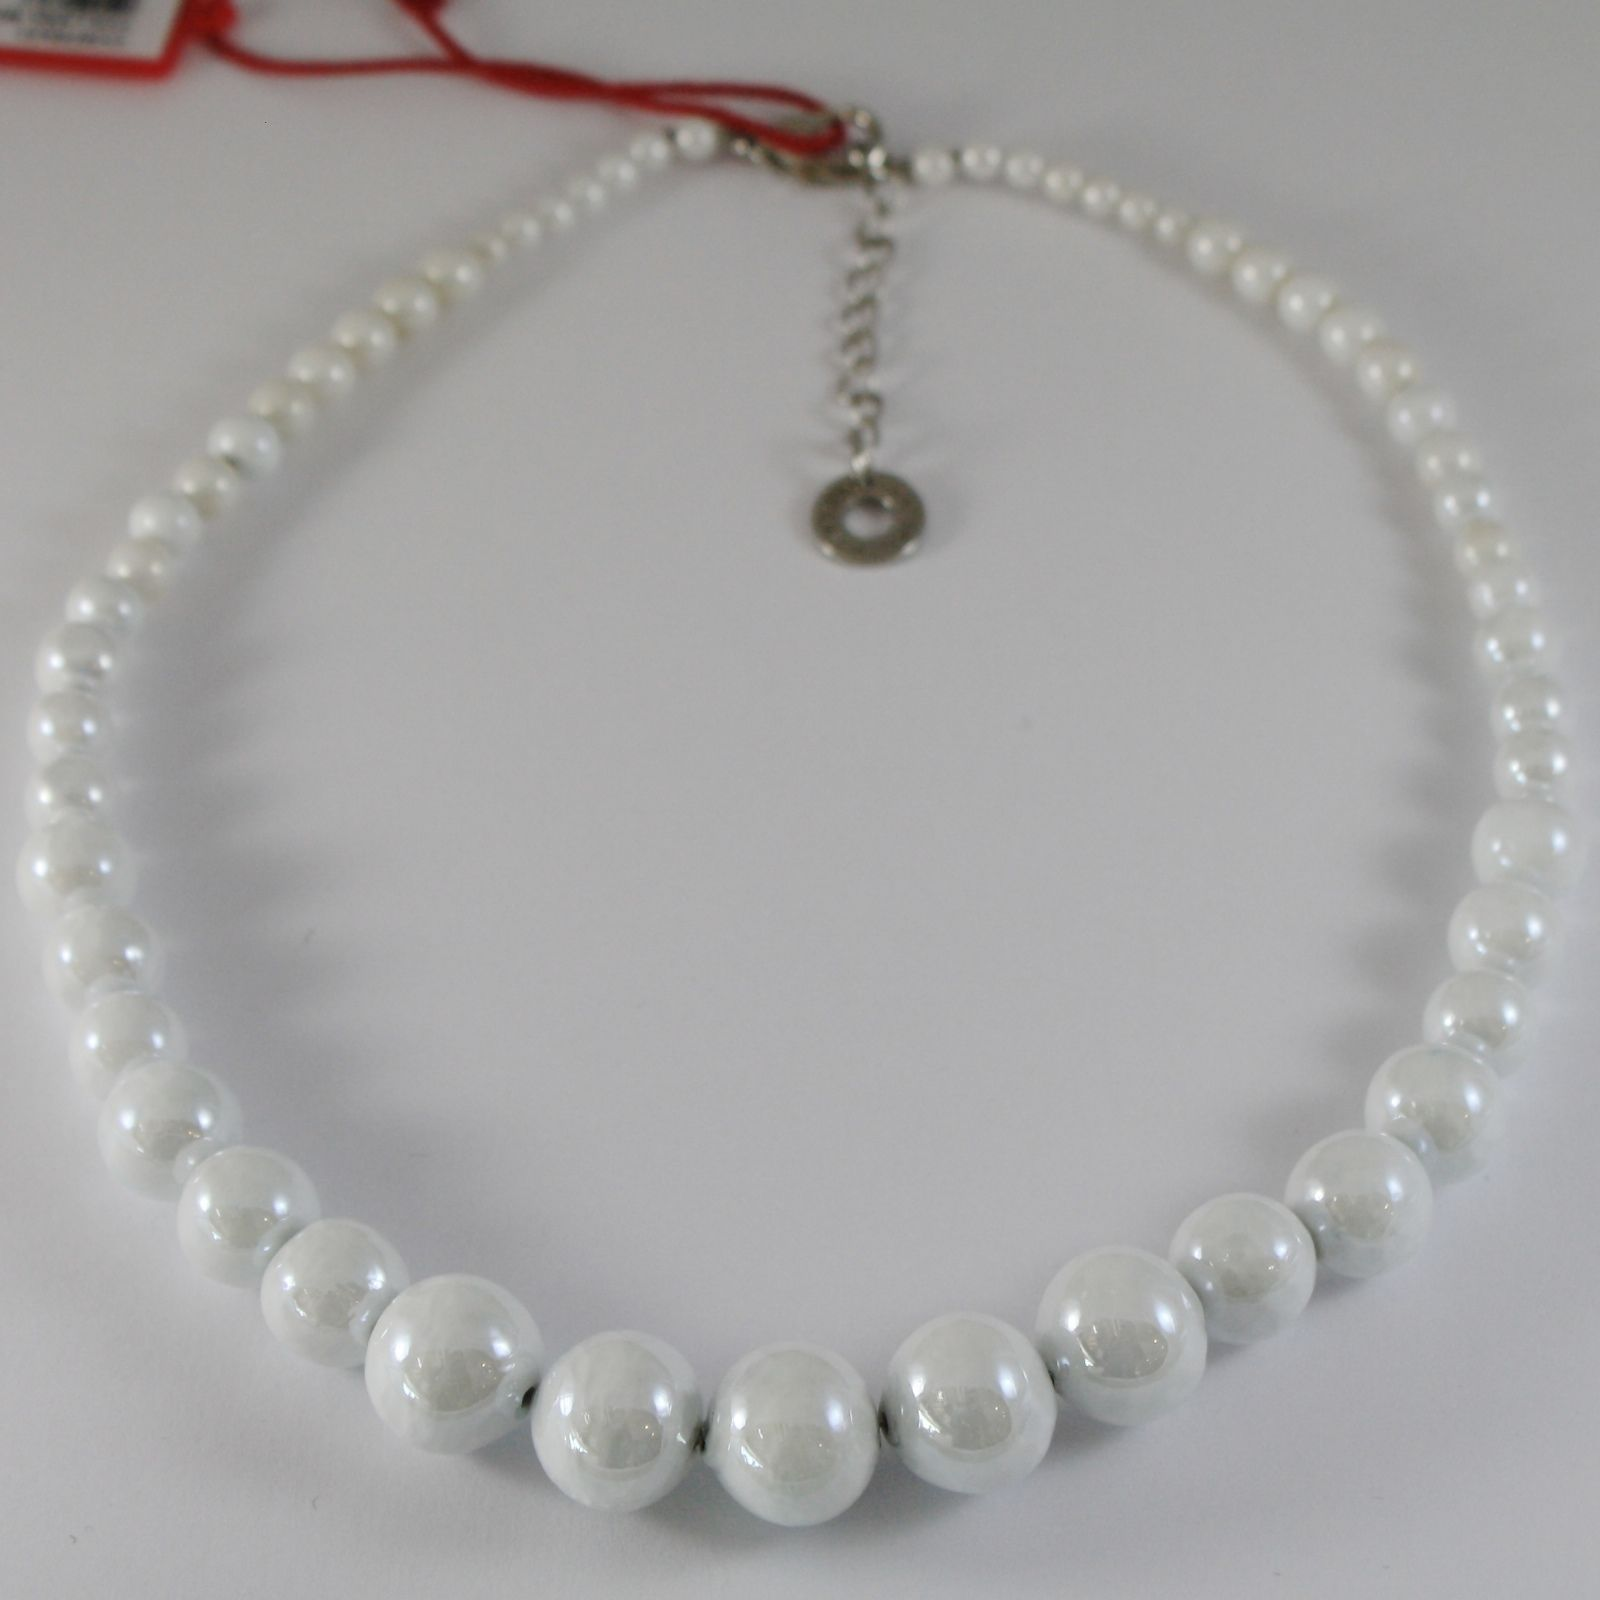 ANTICA MURRINA VENEZIA WHITE 15 MM SPHERE NECKLACE, PERLEADI, 50 CM, 20 INCHES